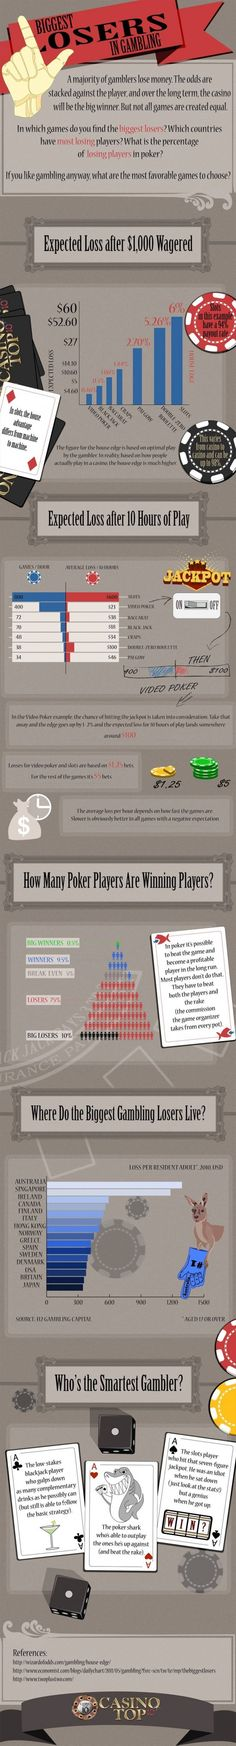 This infographic is all about the biggest losers in gambling. When you wager on the blackjack table or insert coin in slot machine, players will be up against the house benefit. Whatever the game you play, Gambling Games, Gambling Quotes, Casino Games, Gambling Addiction, Gambling Machines, Cars 1, Diabetes Treatment Guidelines, Dog Snacks, Slot Machine